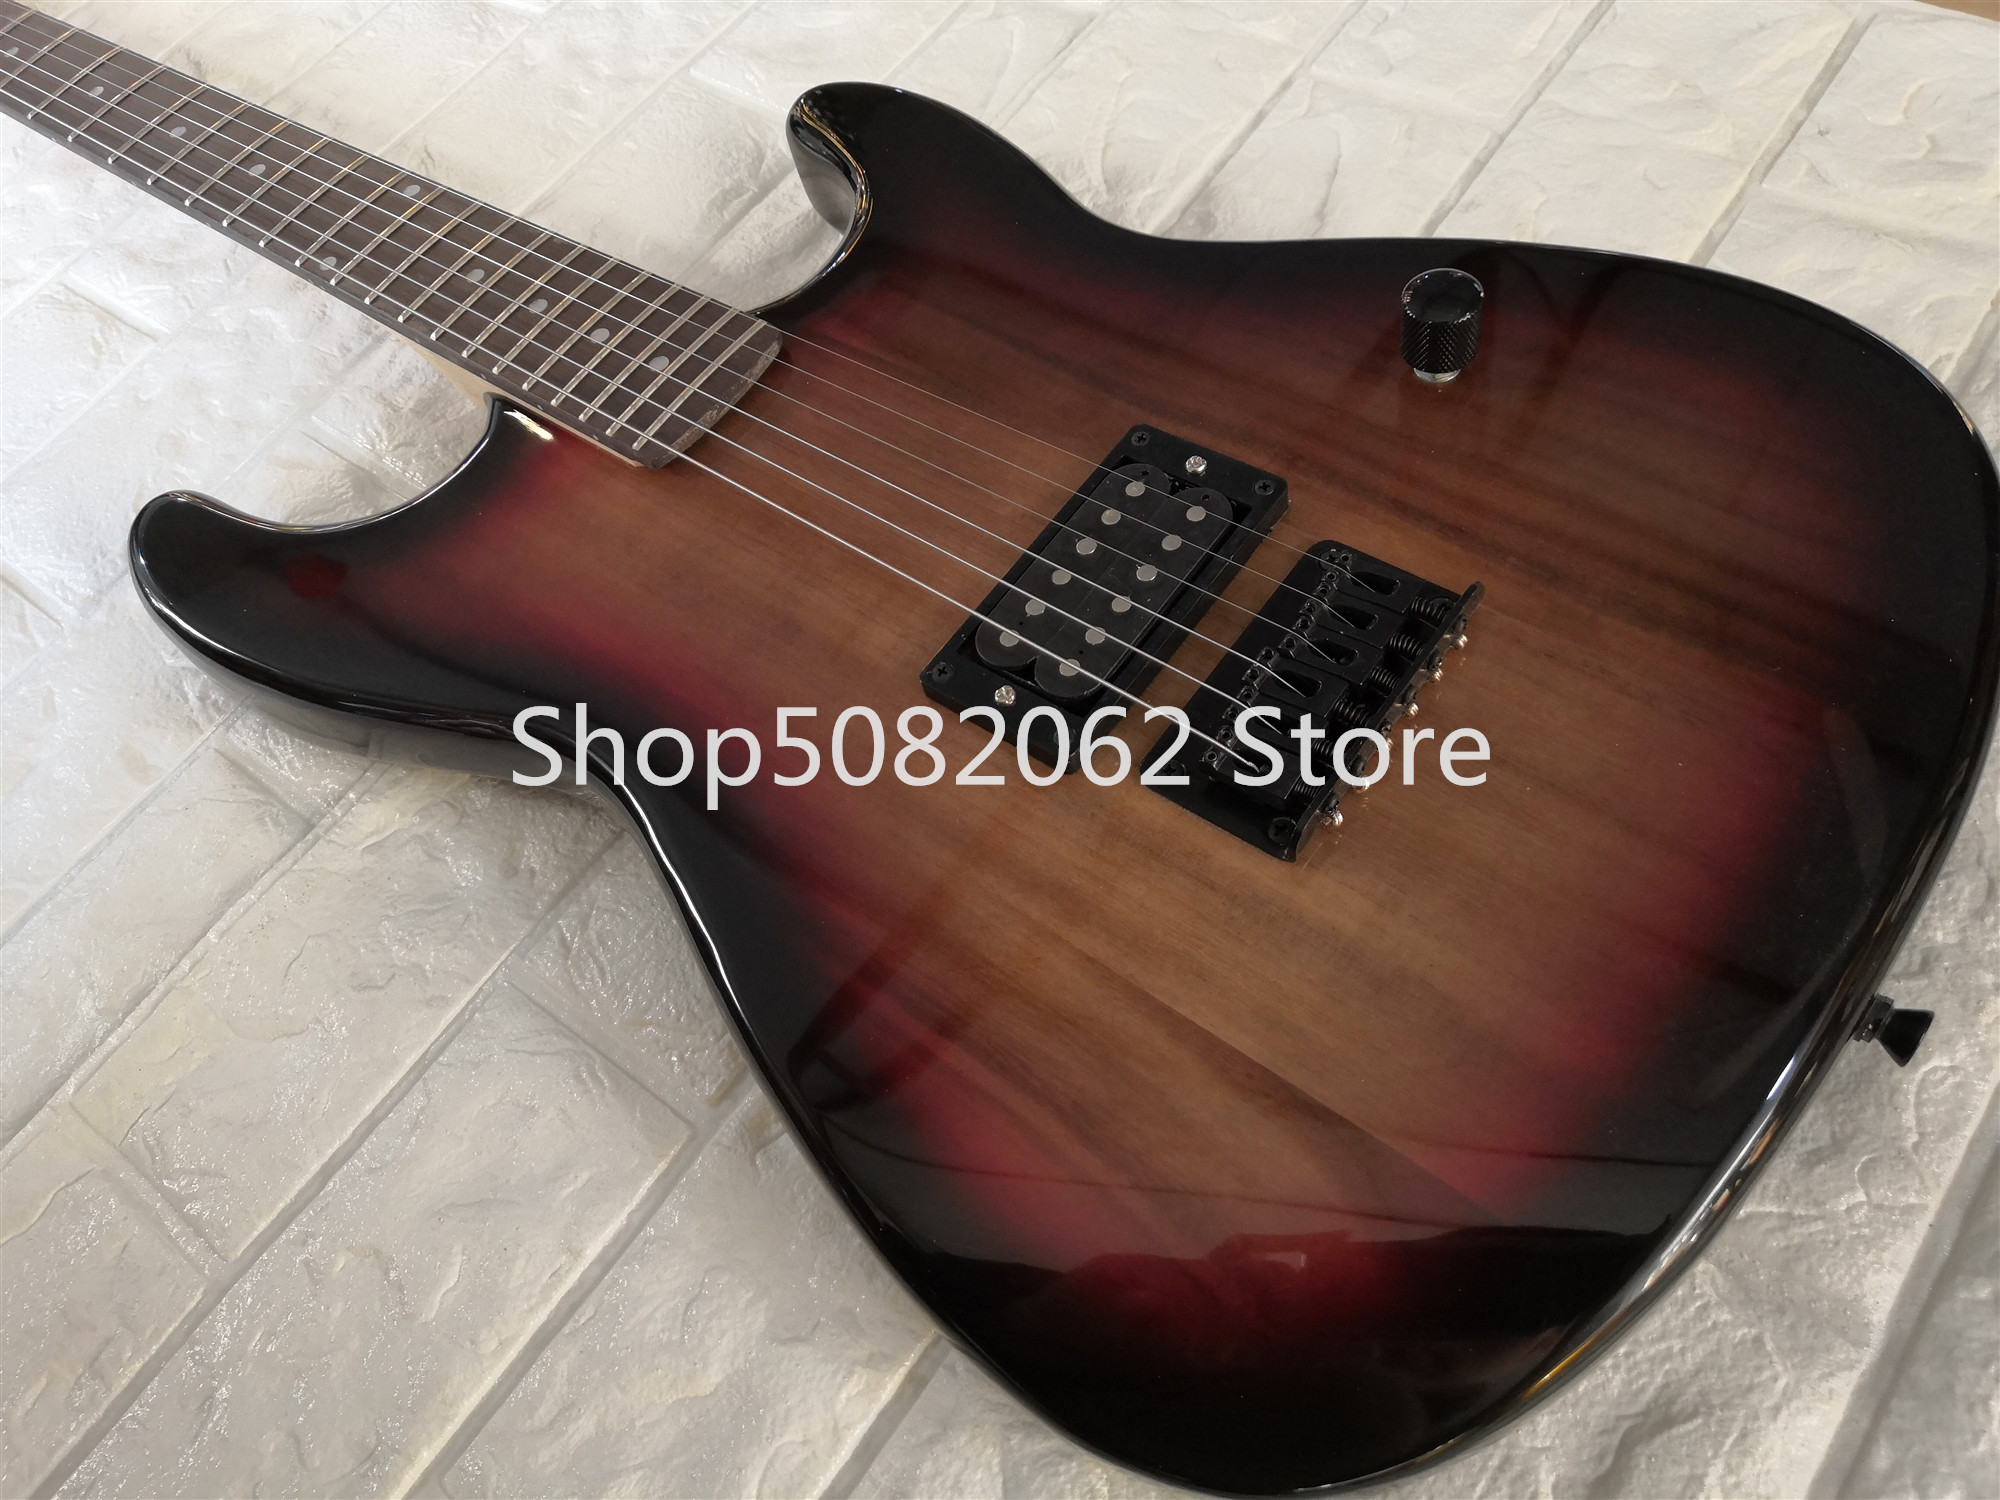 Factory Custom TS color str Guitar with Rosewood fingerboard,Black Hardware,1 H Pickup,customized!S-28(China)